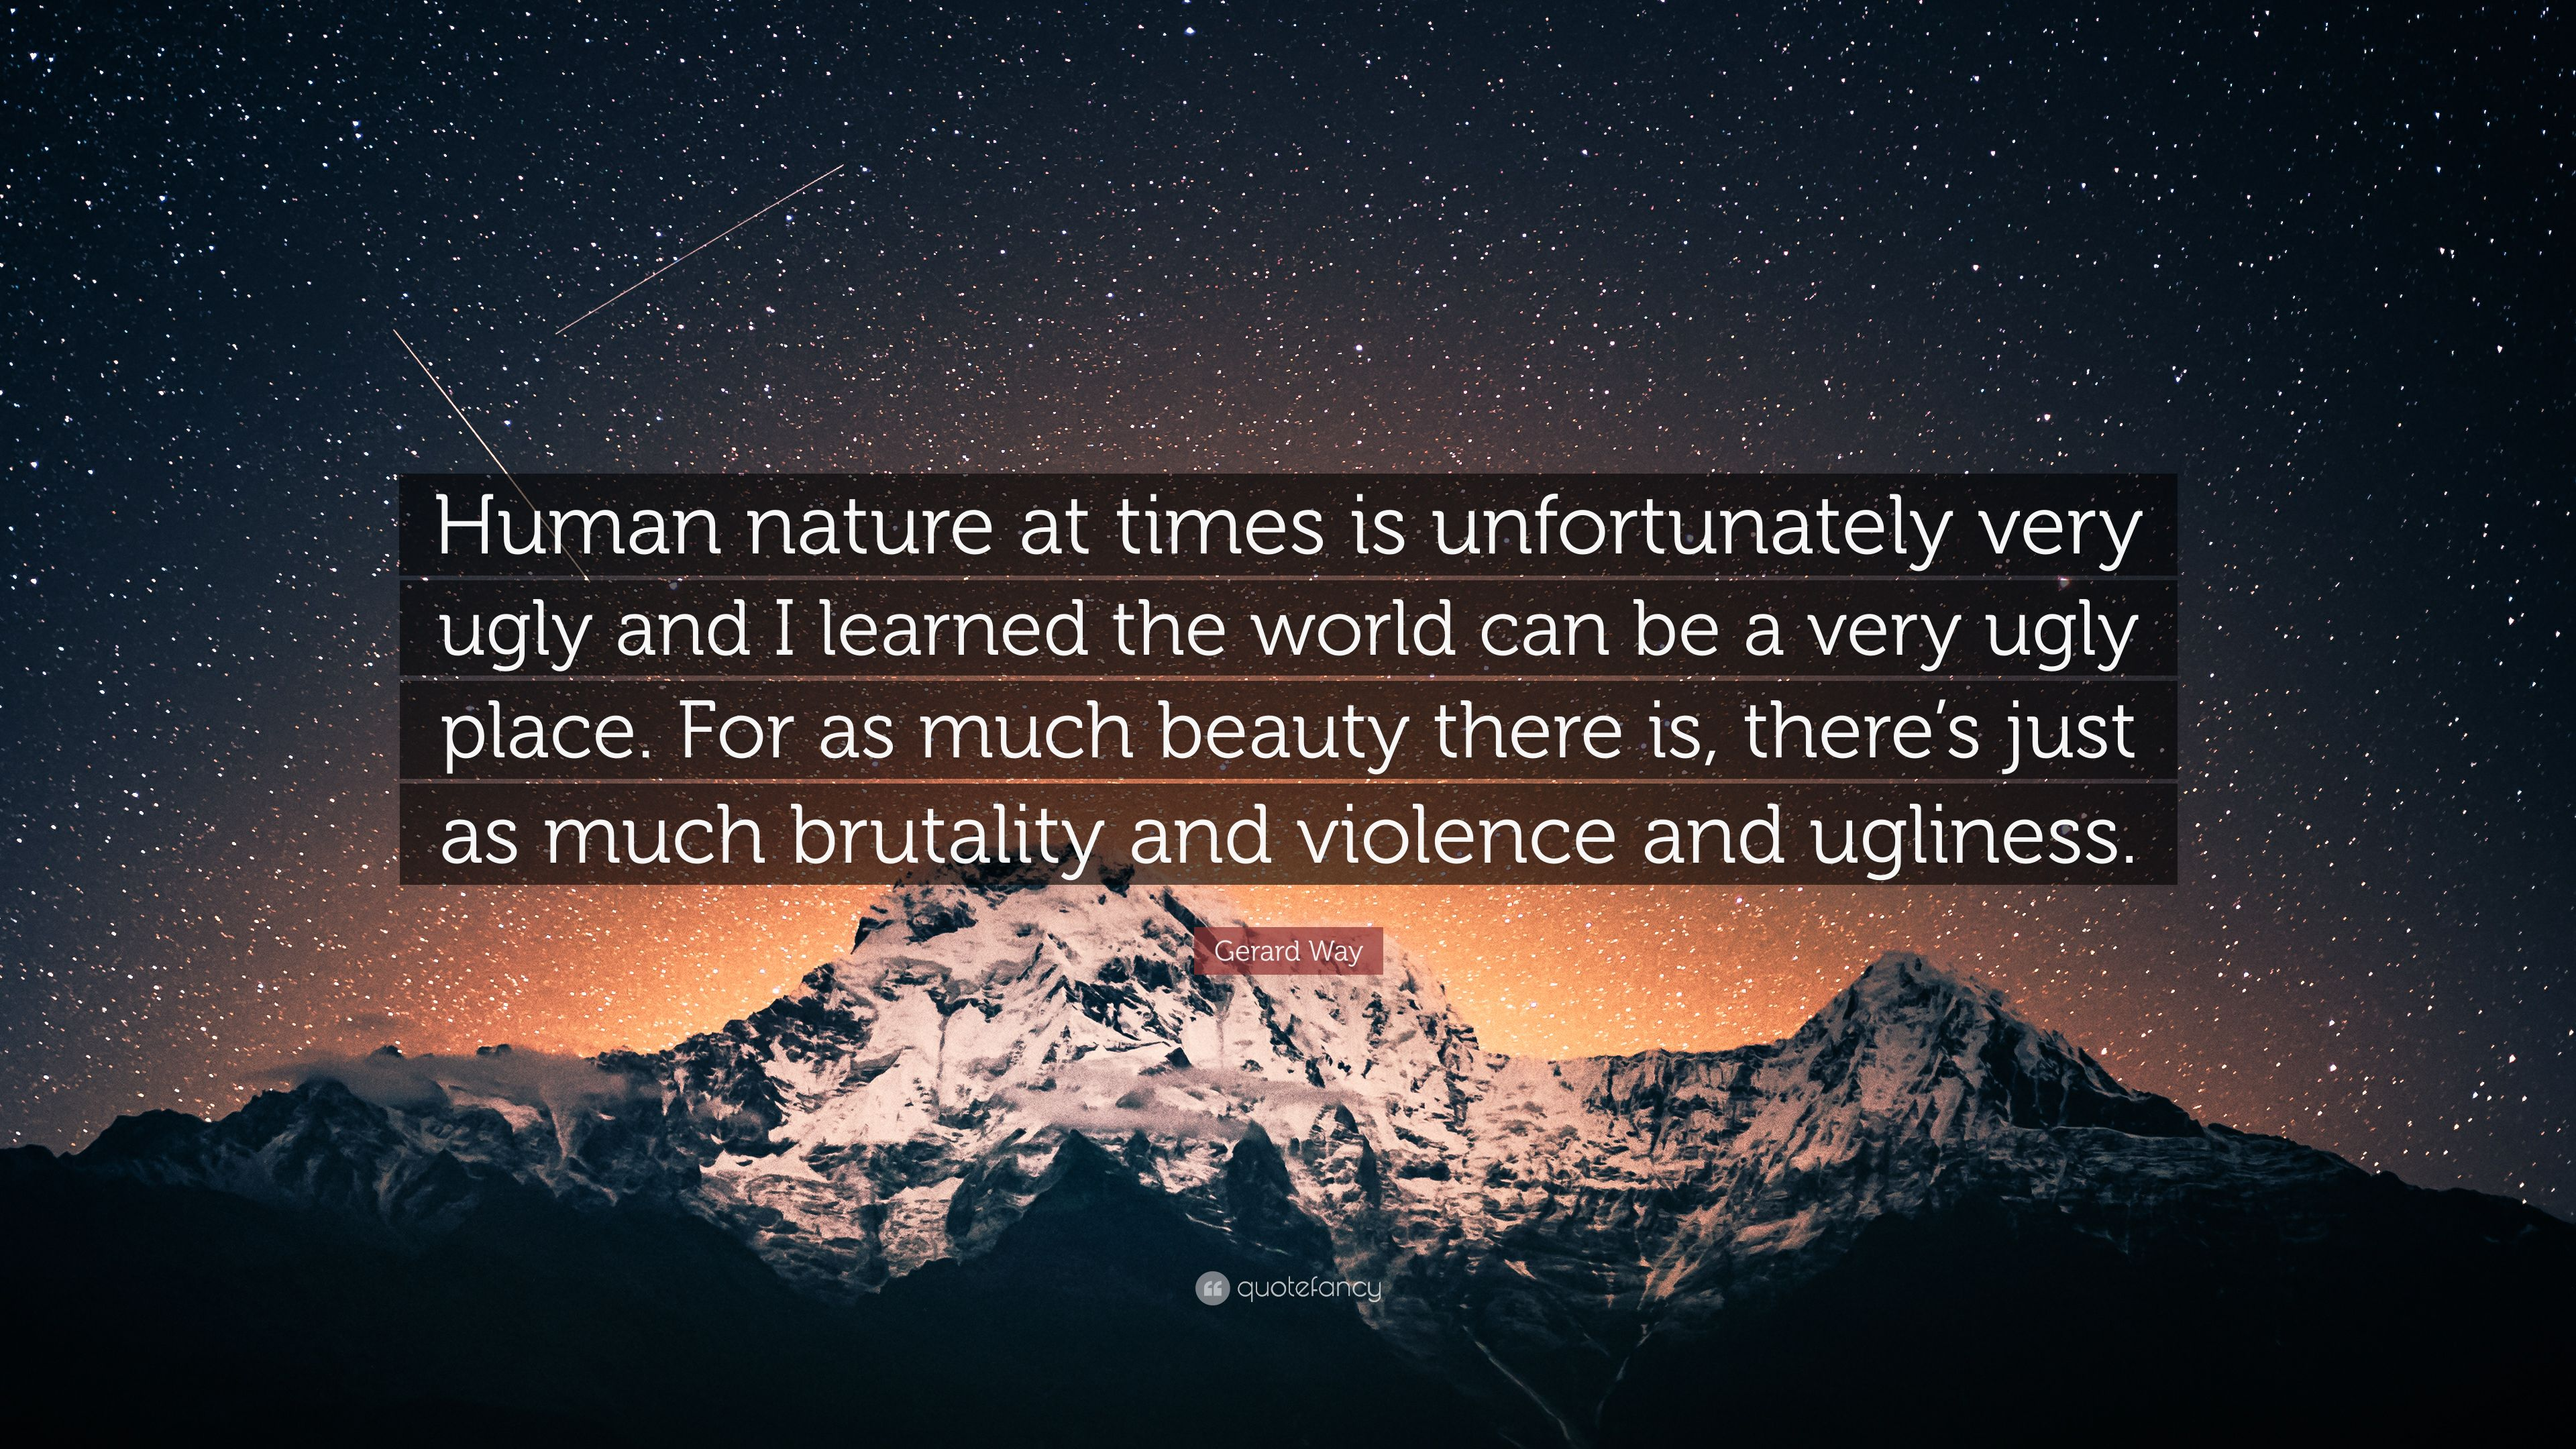 Gerard Way Quote Human Nature At Times Is Unfortunately Very Ugly